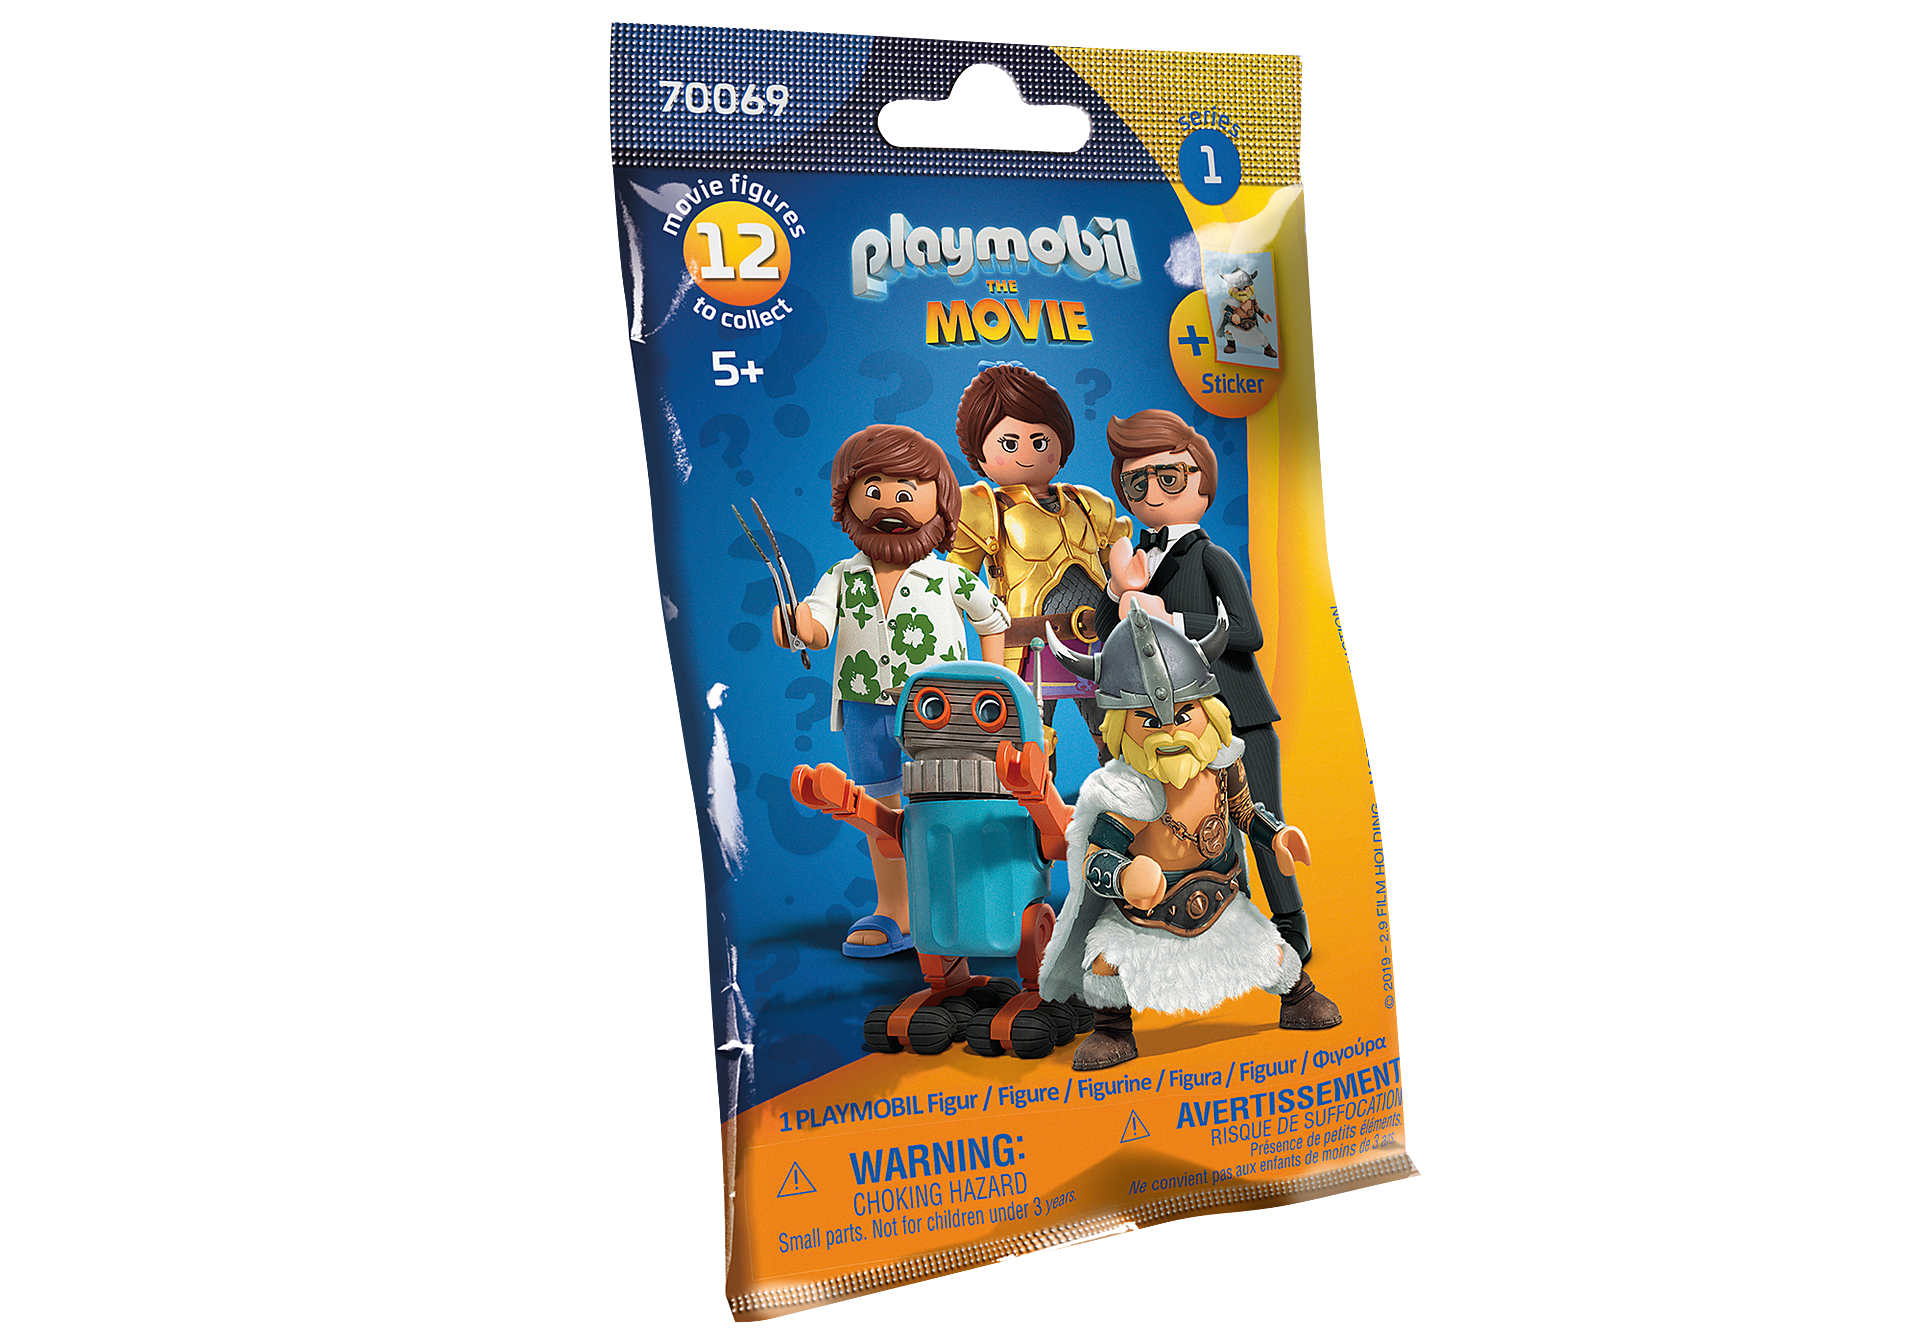 70069 PLAYMOBIL THE MOVIE Figures (S1) zoom image2